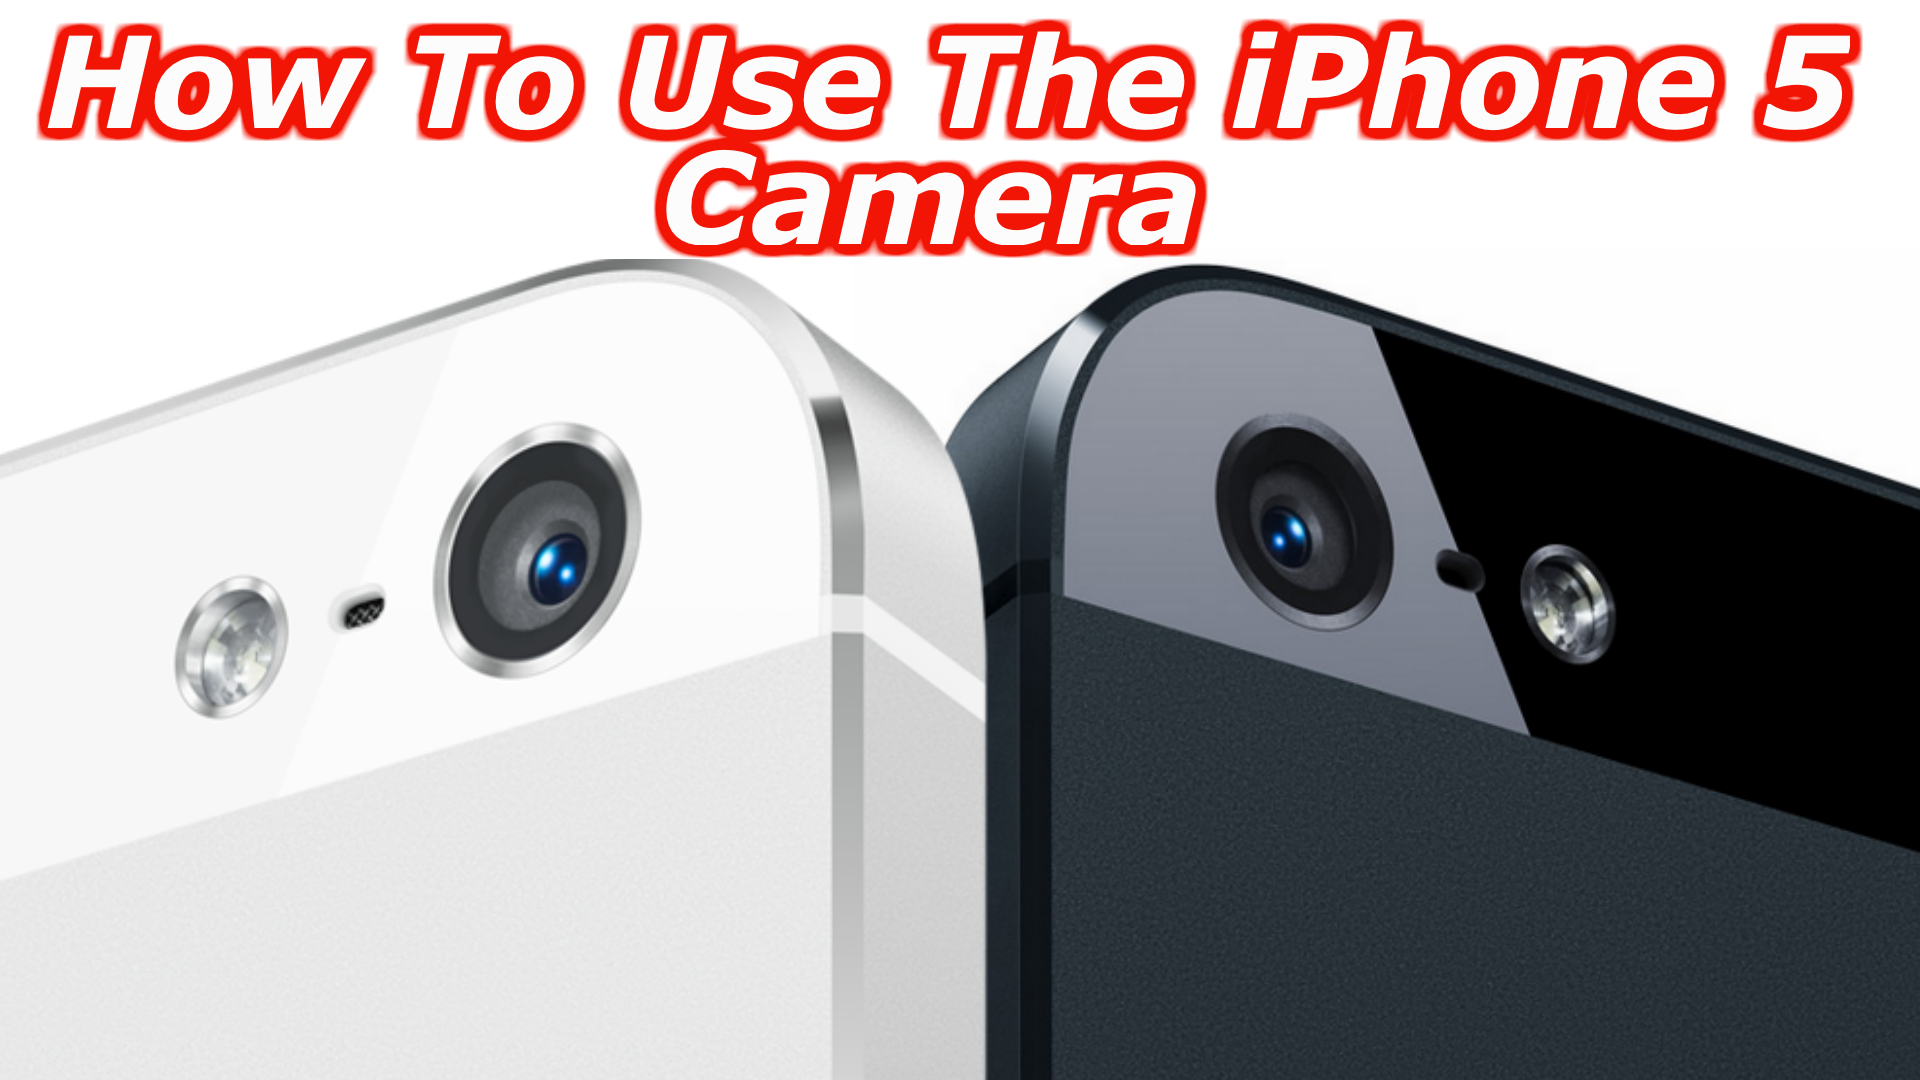 How To Use The iPhone 5 Camera – Video Tutorial